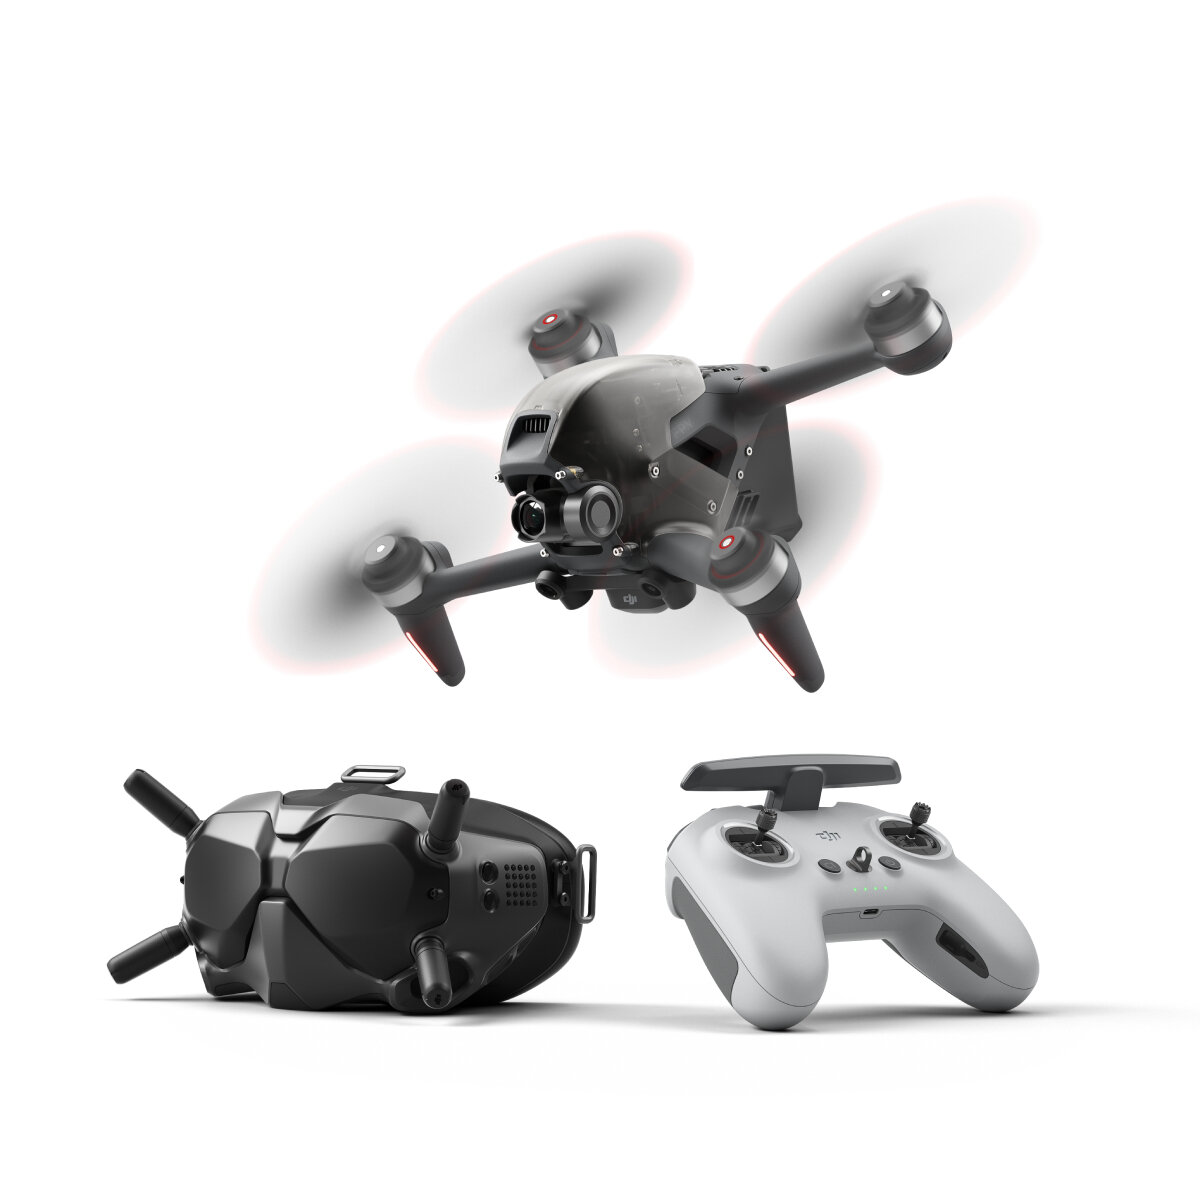 DJI FPV Combo 10KM 1080P FPV 4K 60fps 150° FOV Camera 20mins Flight Time 140 km/h Speed FPV Drone RC Quadcopter FPV Goggles V2 5.8GHz Transmitter Mode2